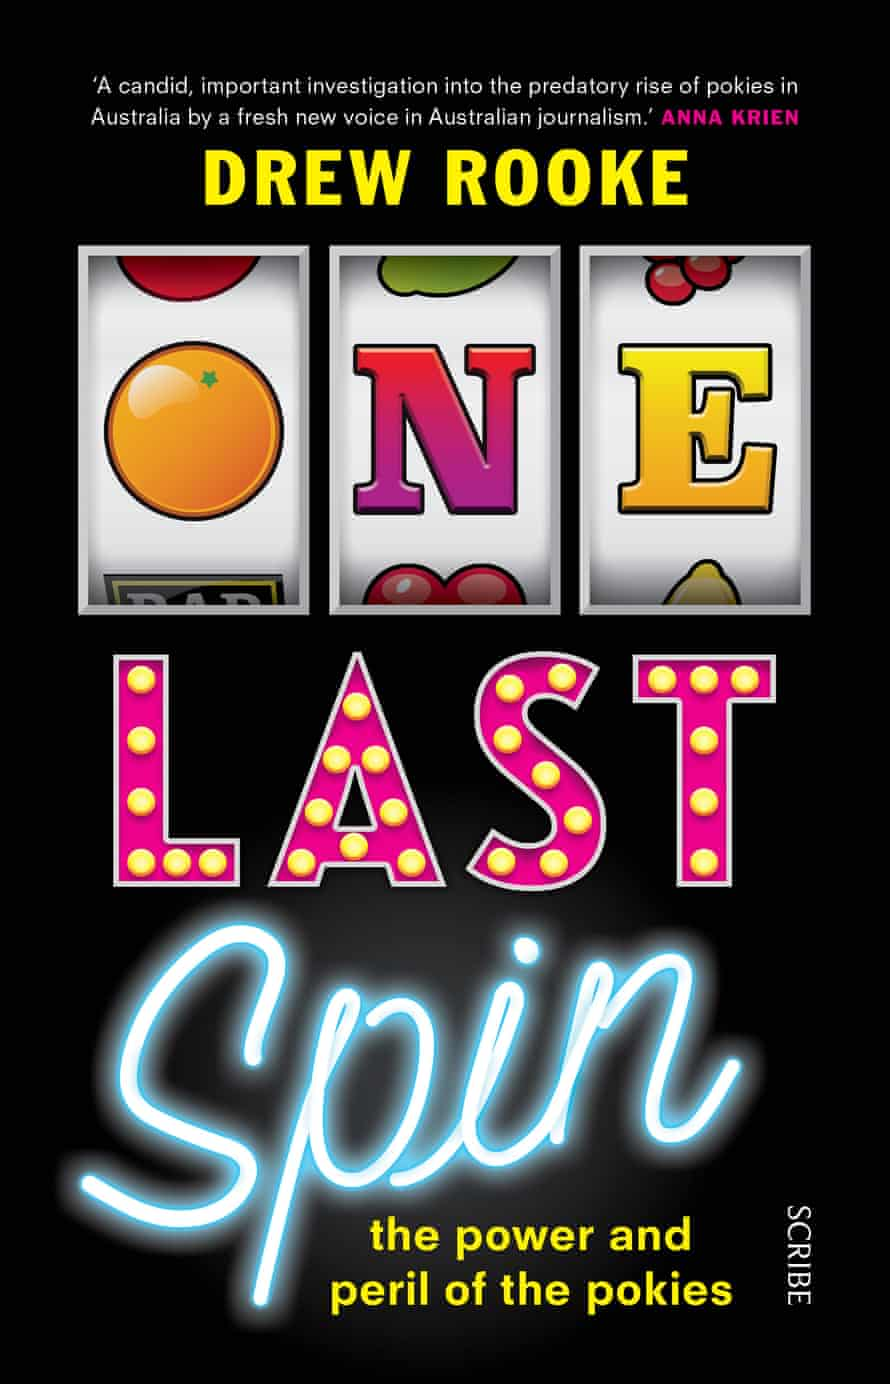 One Last Spin: the Power and Peril of the Pokies, a book about pokies in Australia by Drew Rooke, is out in May through Scribe.